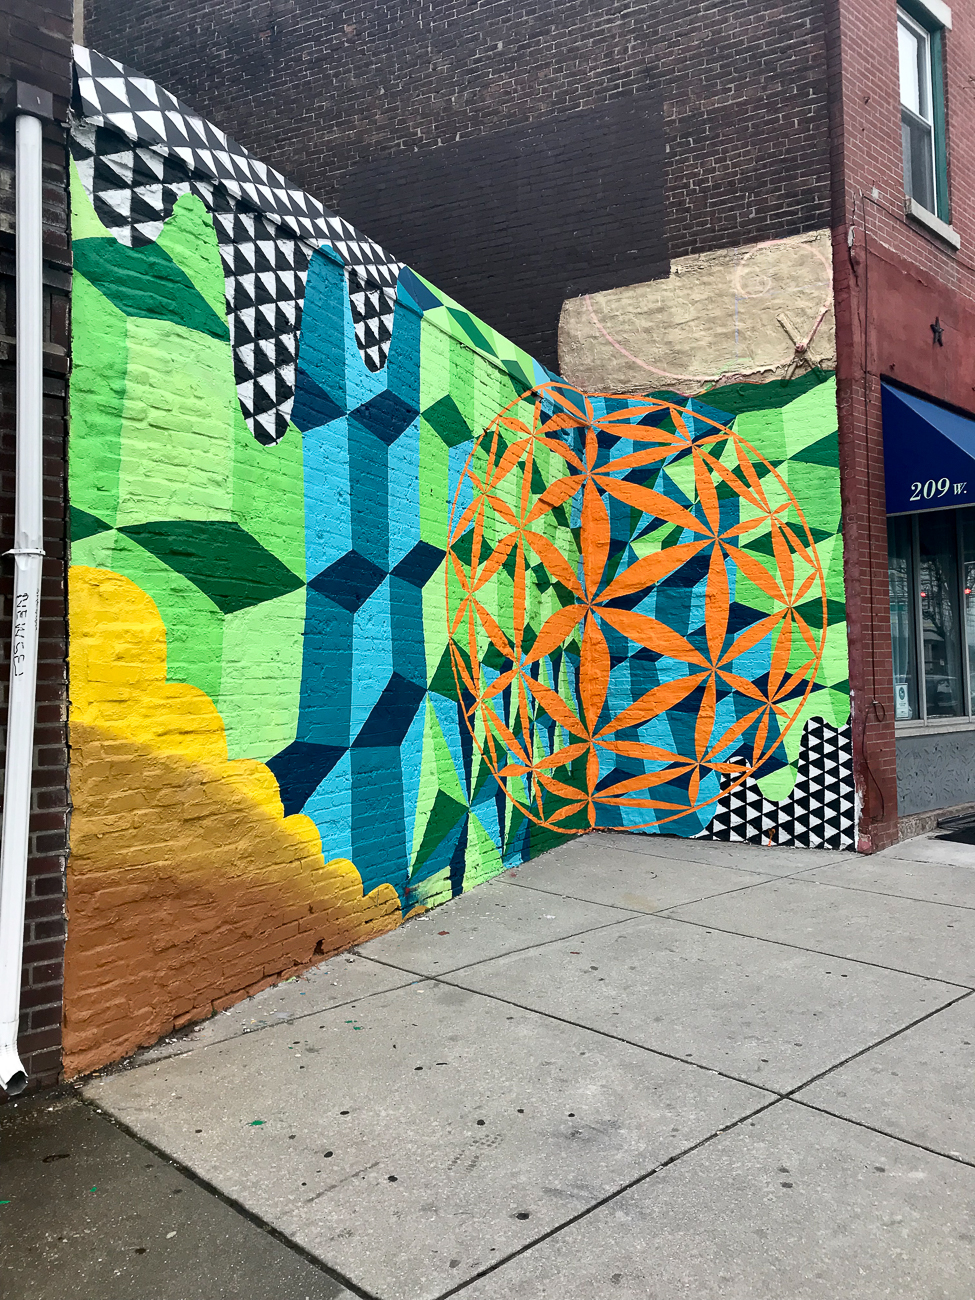 LOCATION: W. Girard Ave / NEIGHBORHOOD: Kensington (Northern Philly) / Image: Tiffany Hudson // Published: 4.6.18